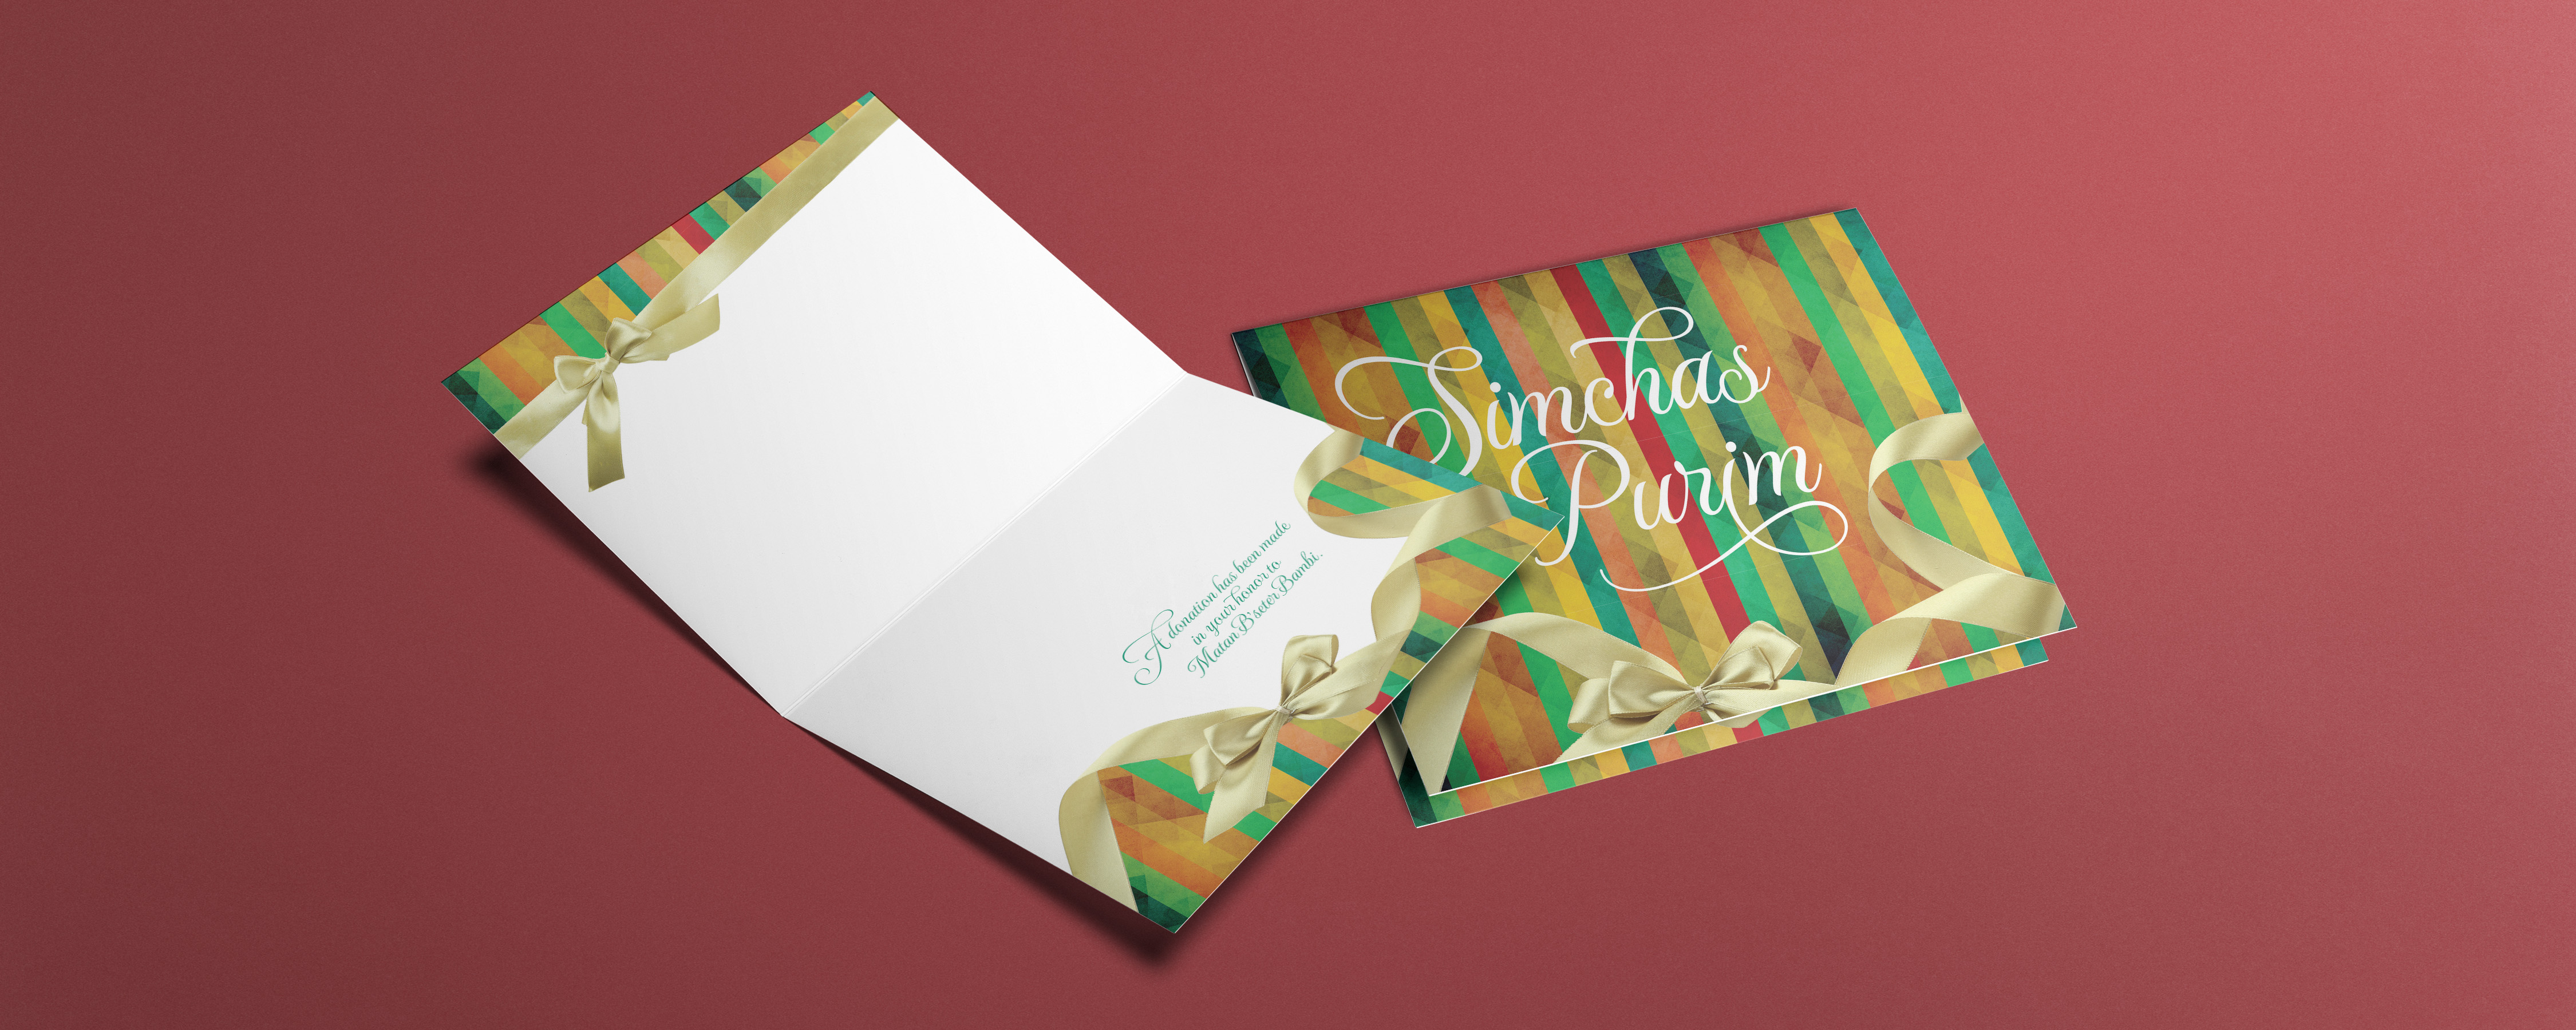 Purim Card: Design 1